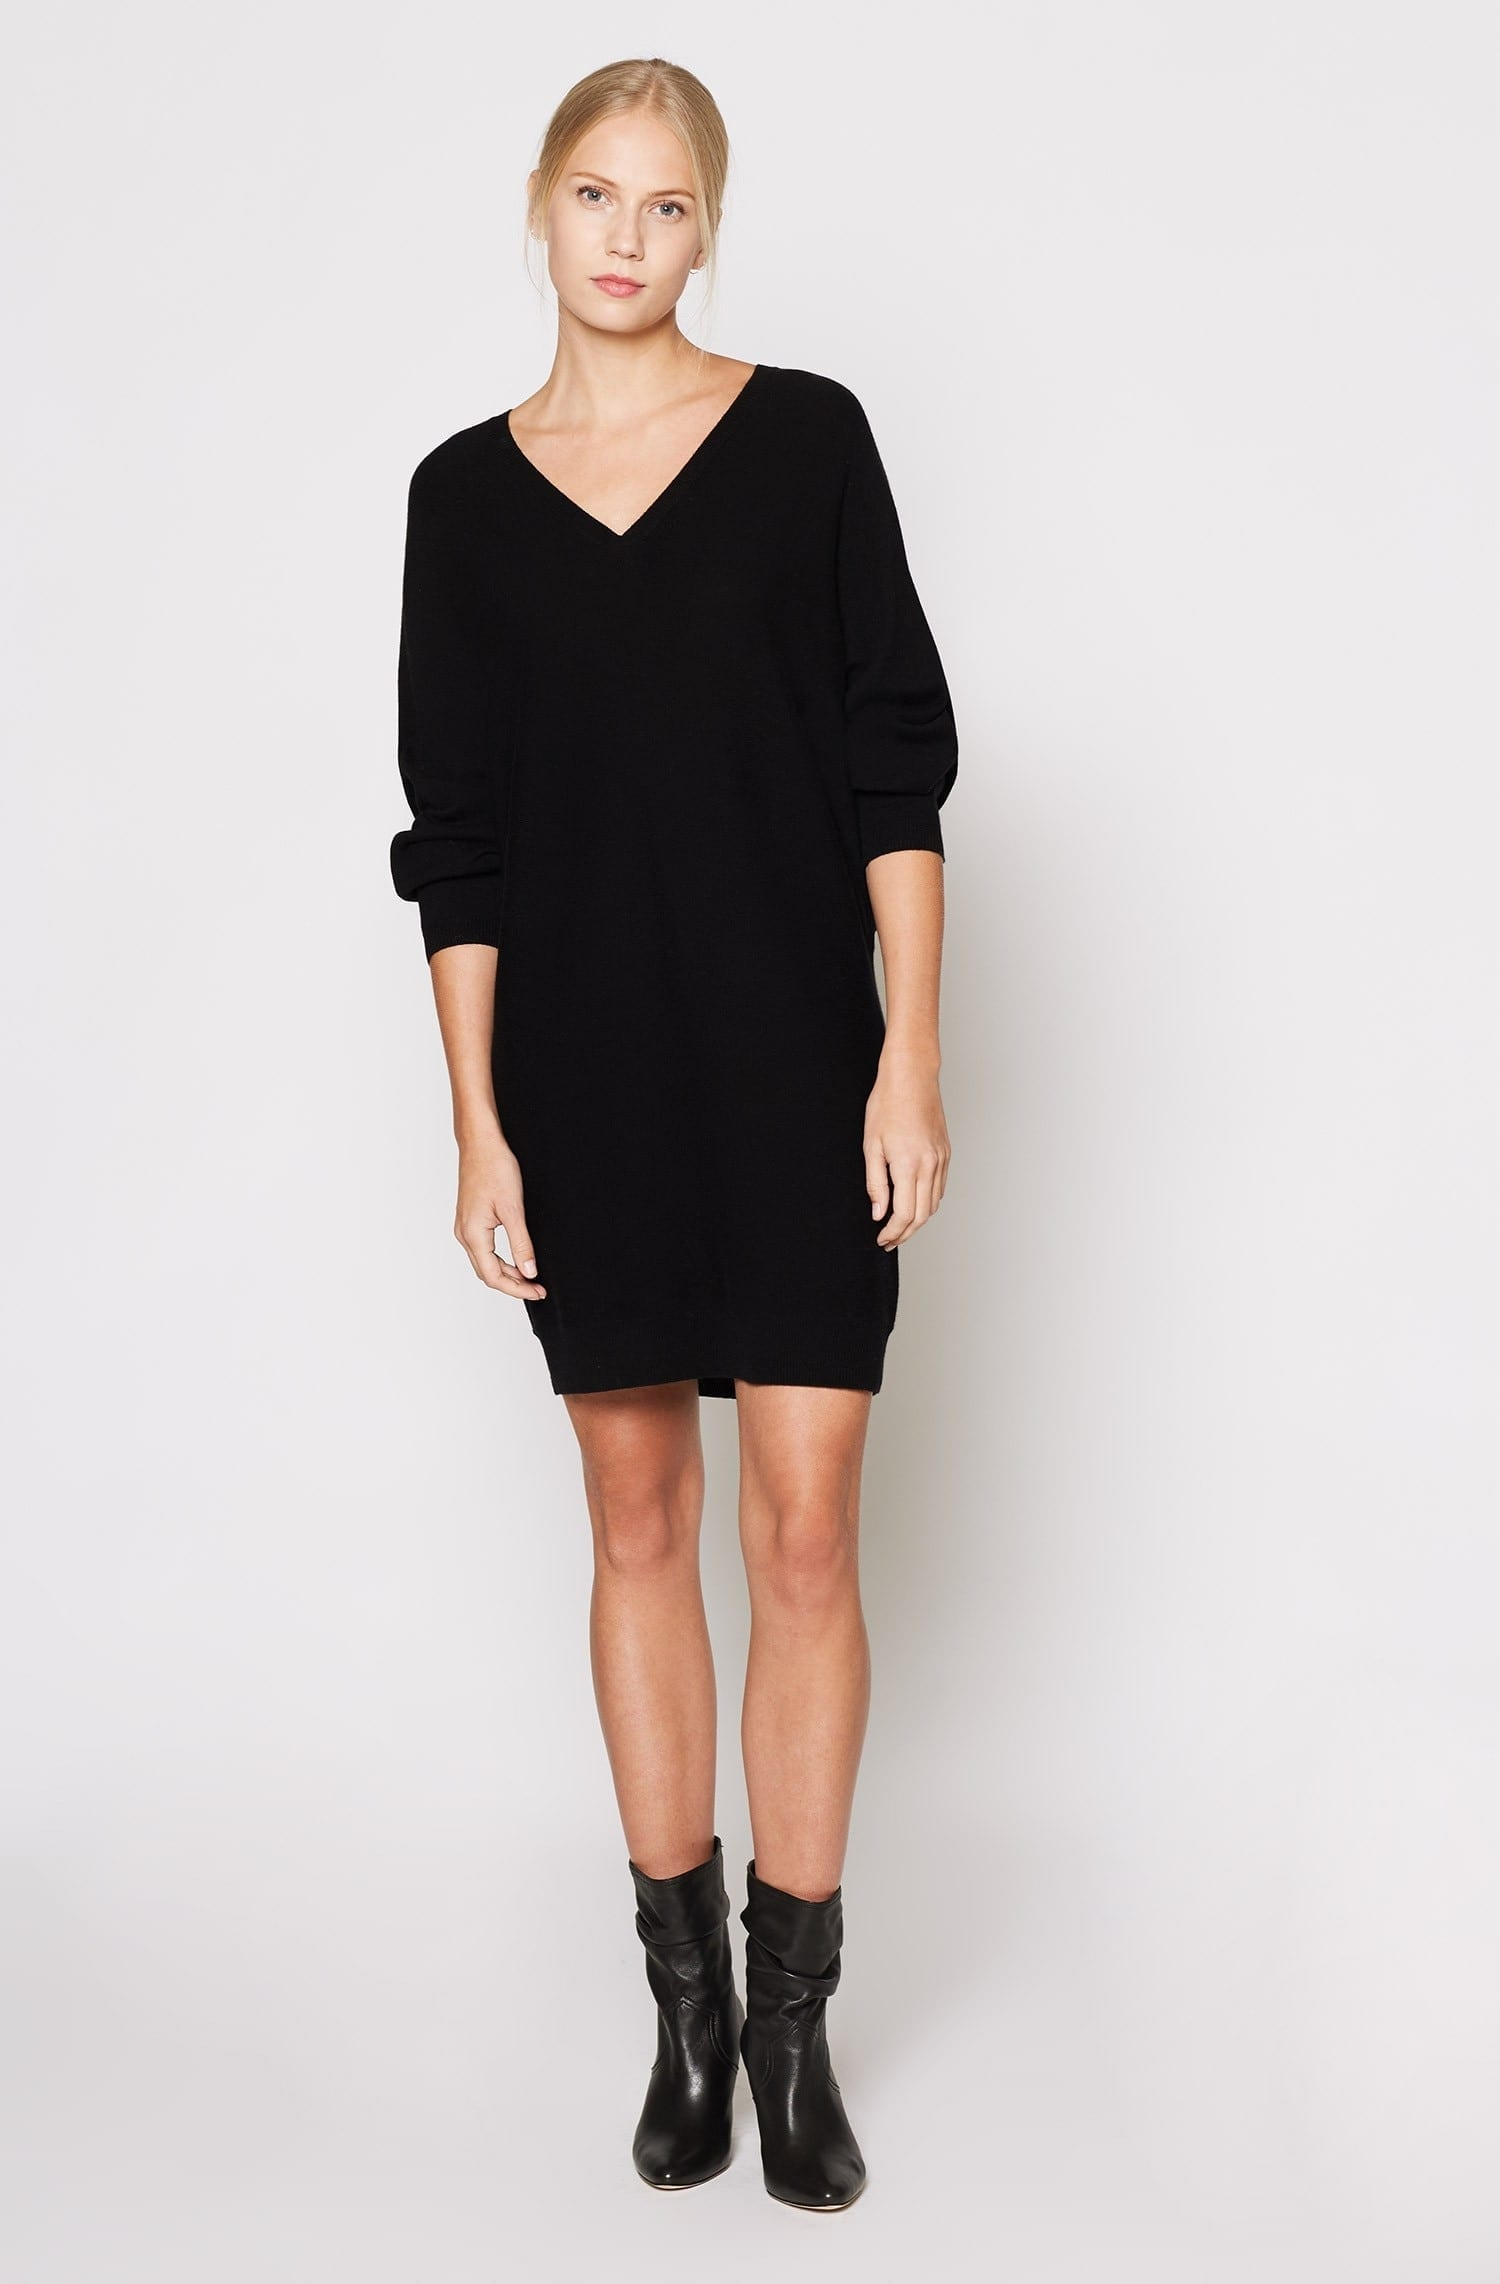 JOIE Azriel Black Sweater